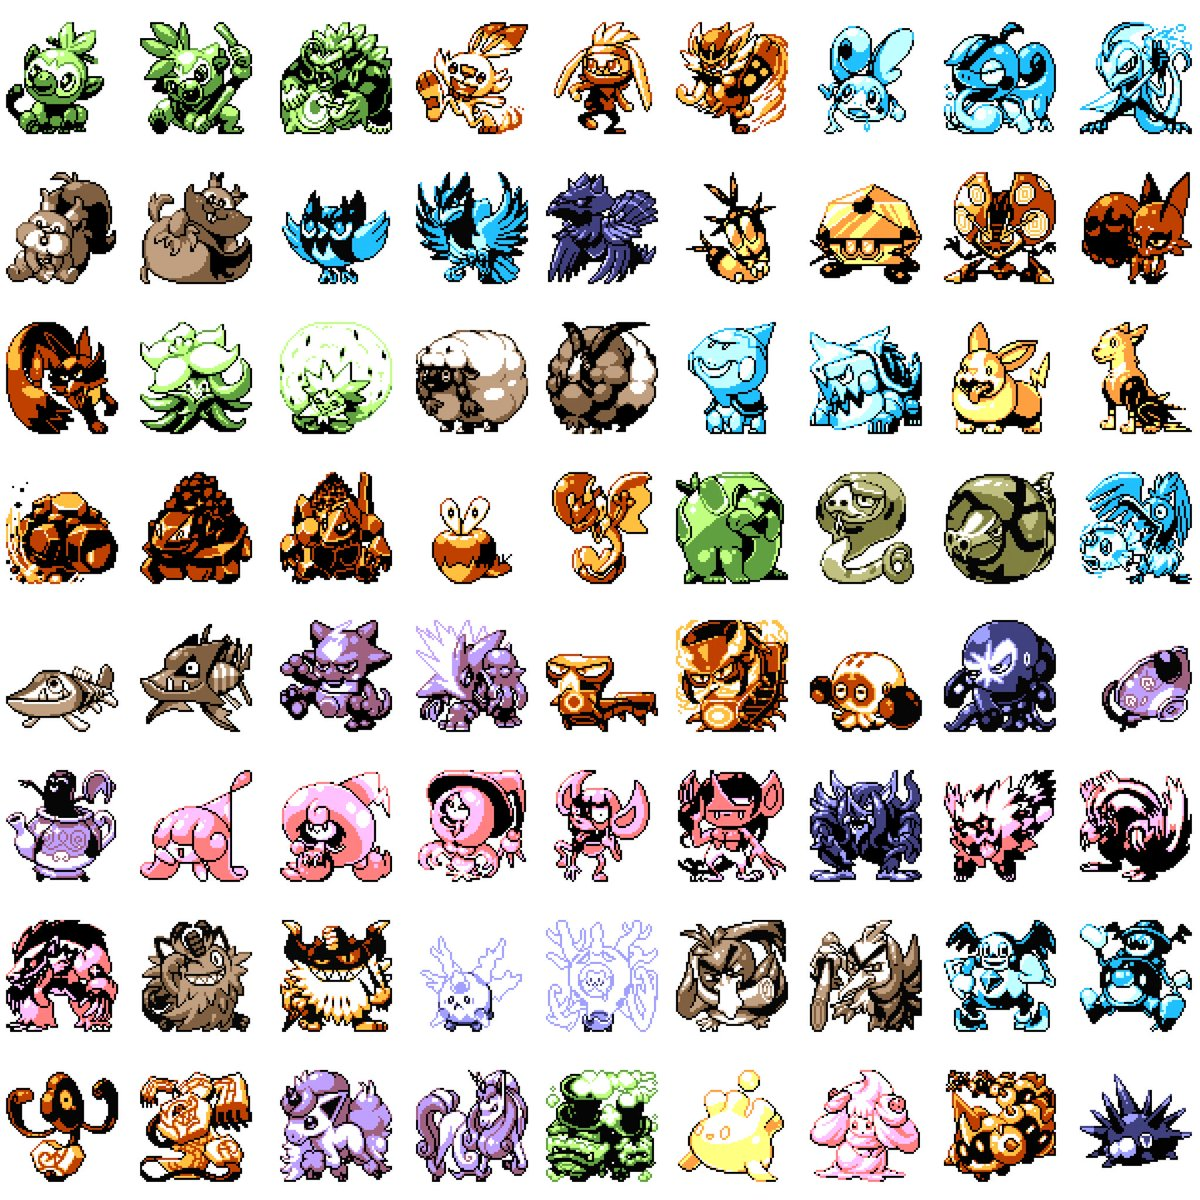 Finally finished all of generation 8 in Gameboy form! They use the Pokémon Yellow palette. You can see some different versions and almost all Gigantamax forma as well on patspixels on instagram. #pixelart #pixelartist  #pokemon #nintendo #NintendoSwitch #pokemon25 #gameboy